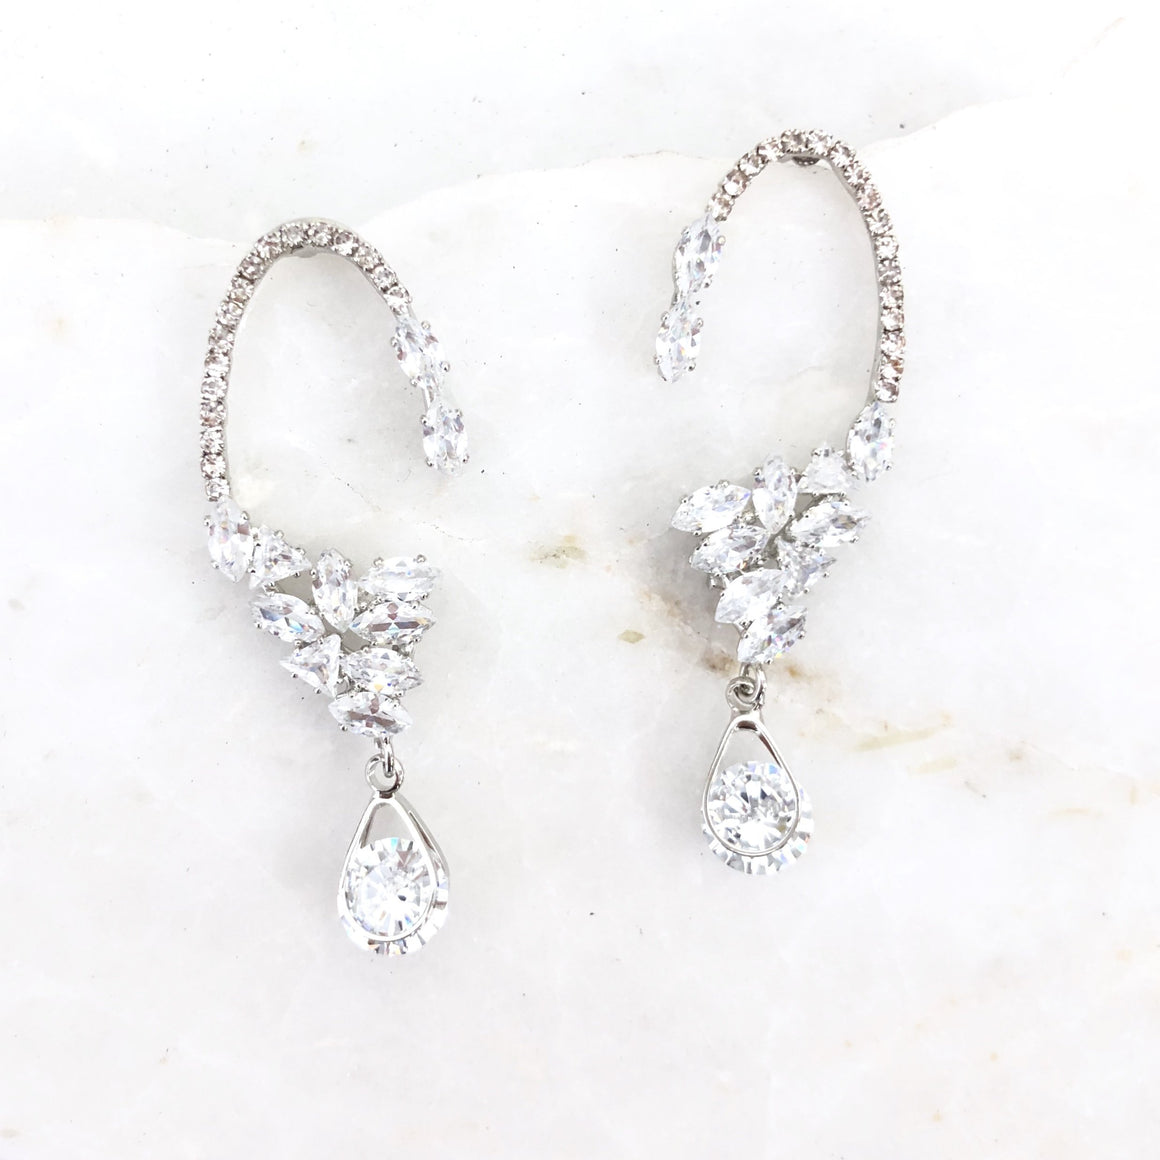 Elegant Chic Crystal Silver Earrings